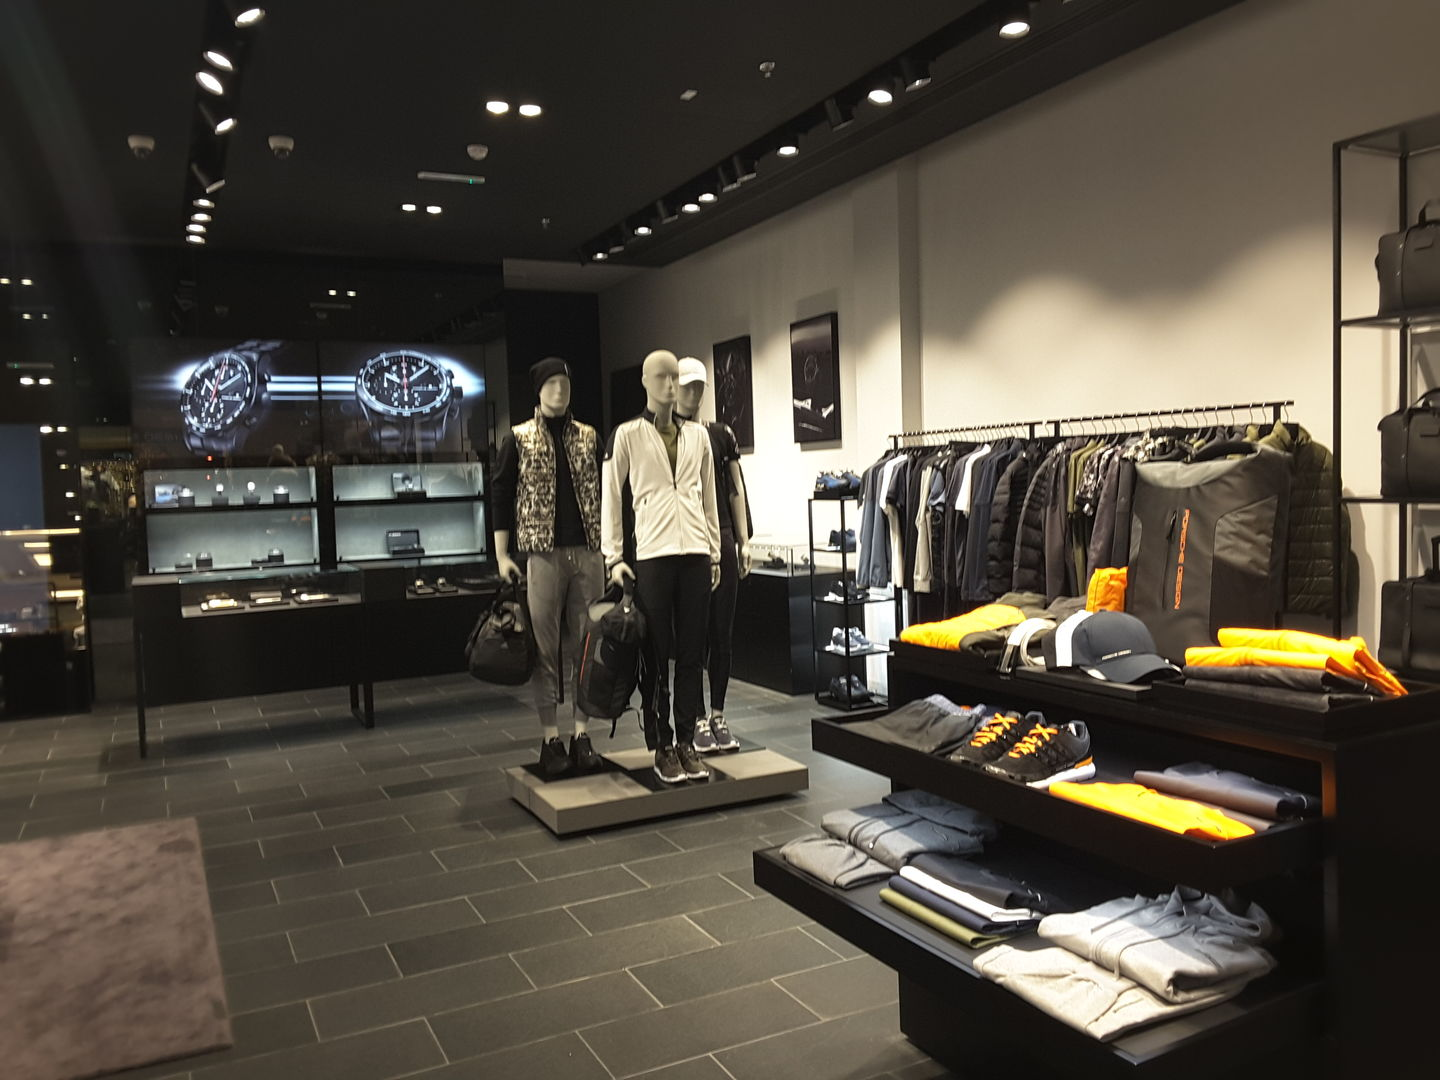 HiDubai-business-porsche-design-shopping-apparel-al-barsha-1-dubai-2